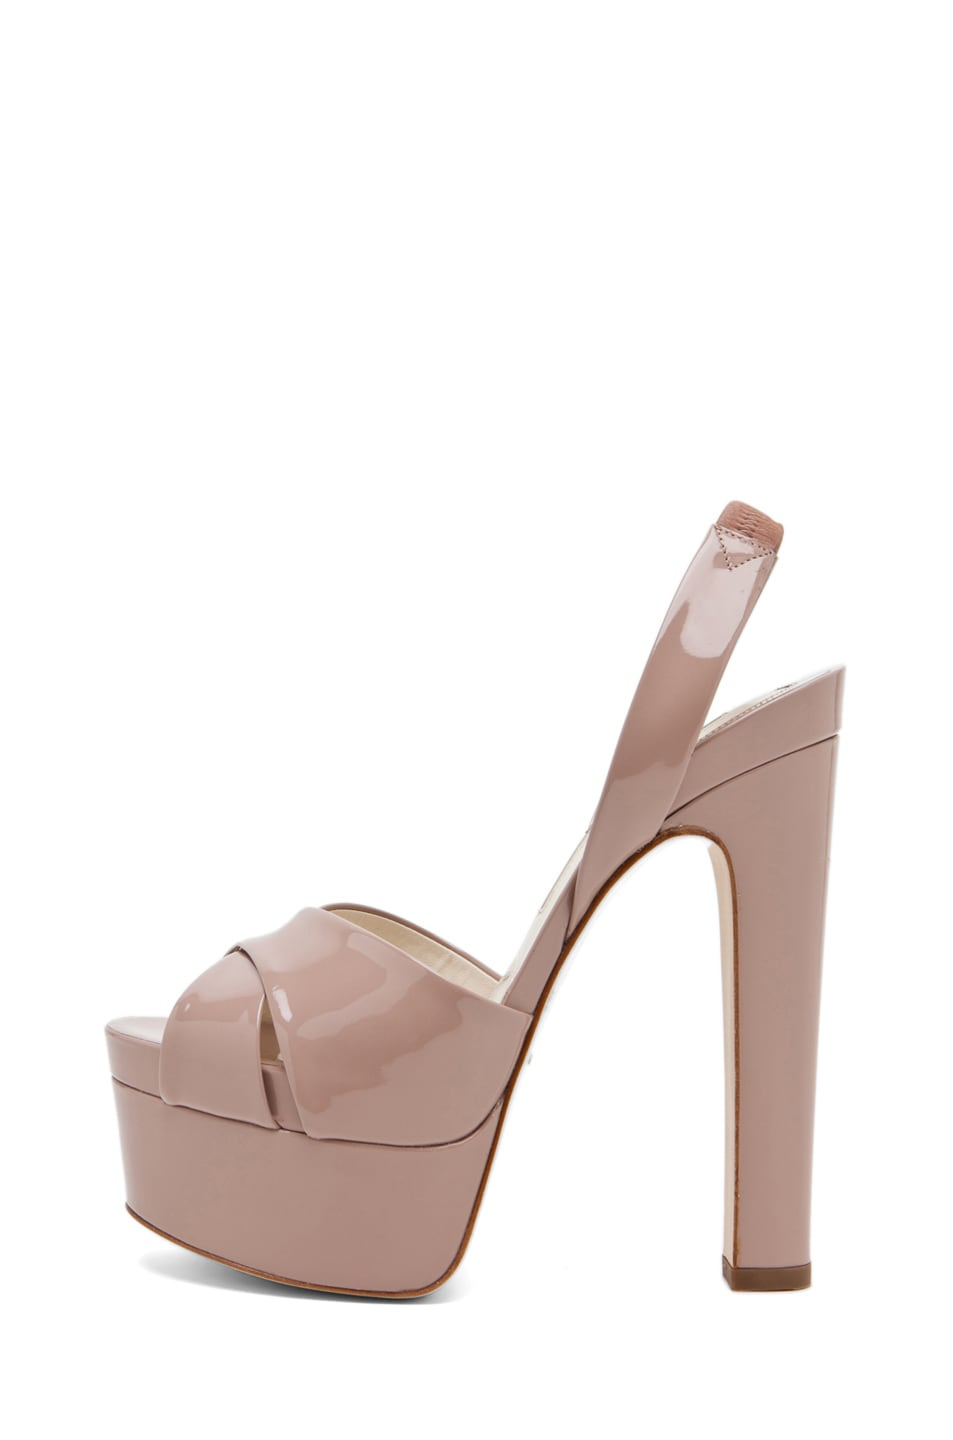 Image 1 of Brian Atwood Manhattan Sandal in Cappuccino Nude